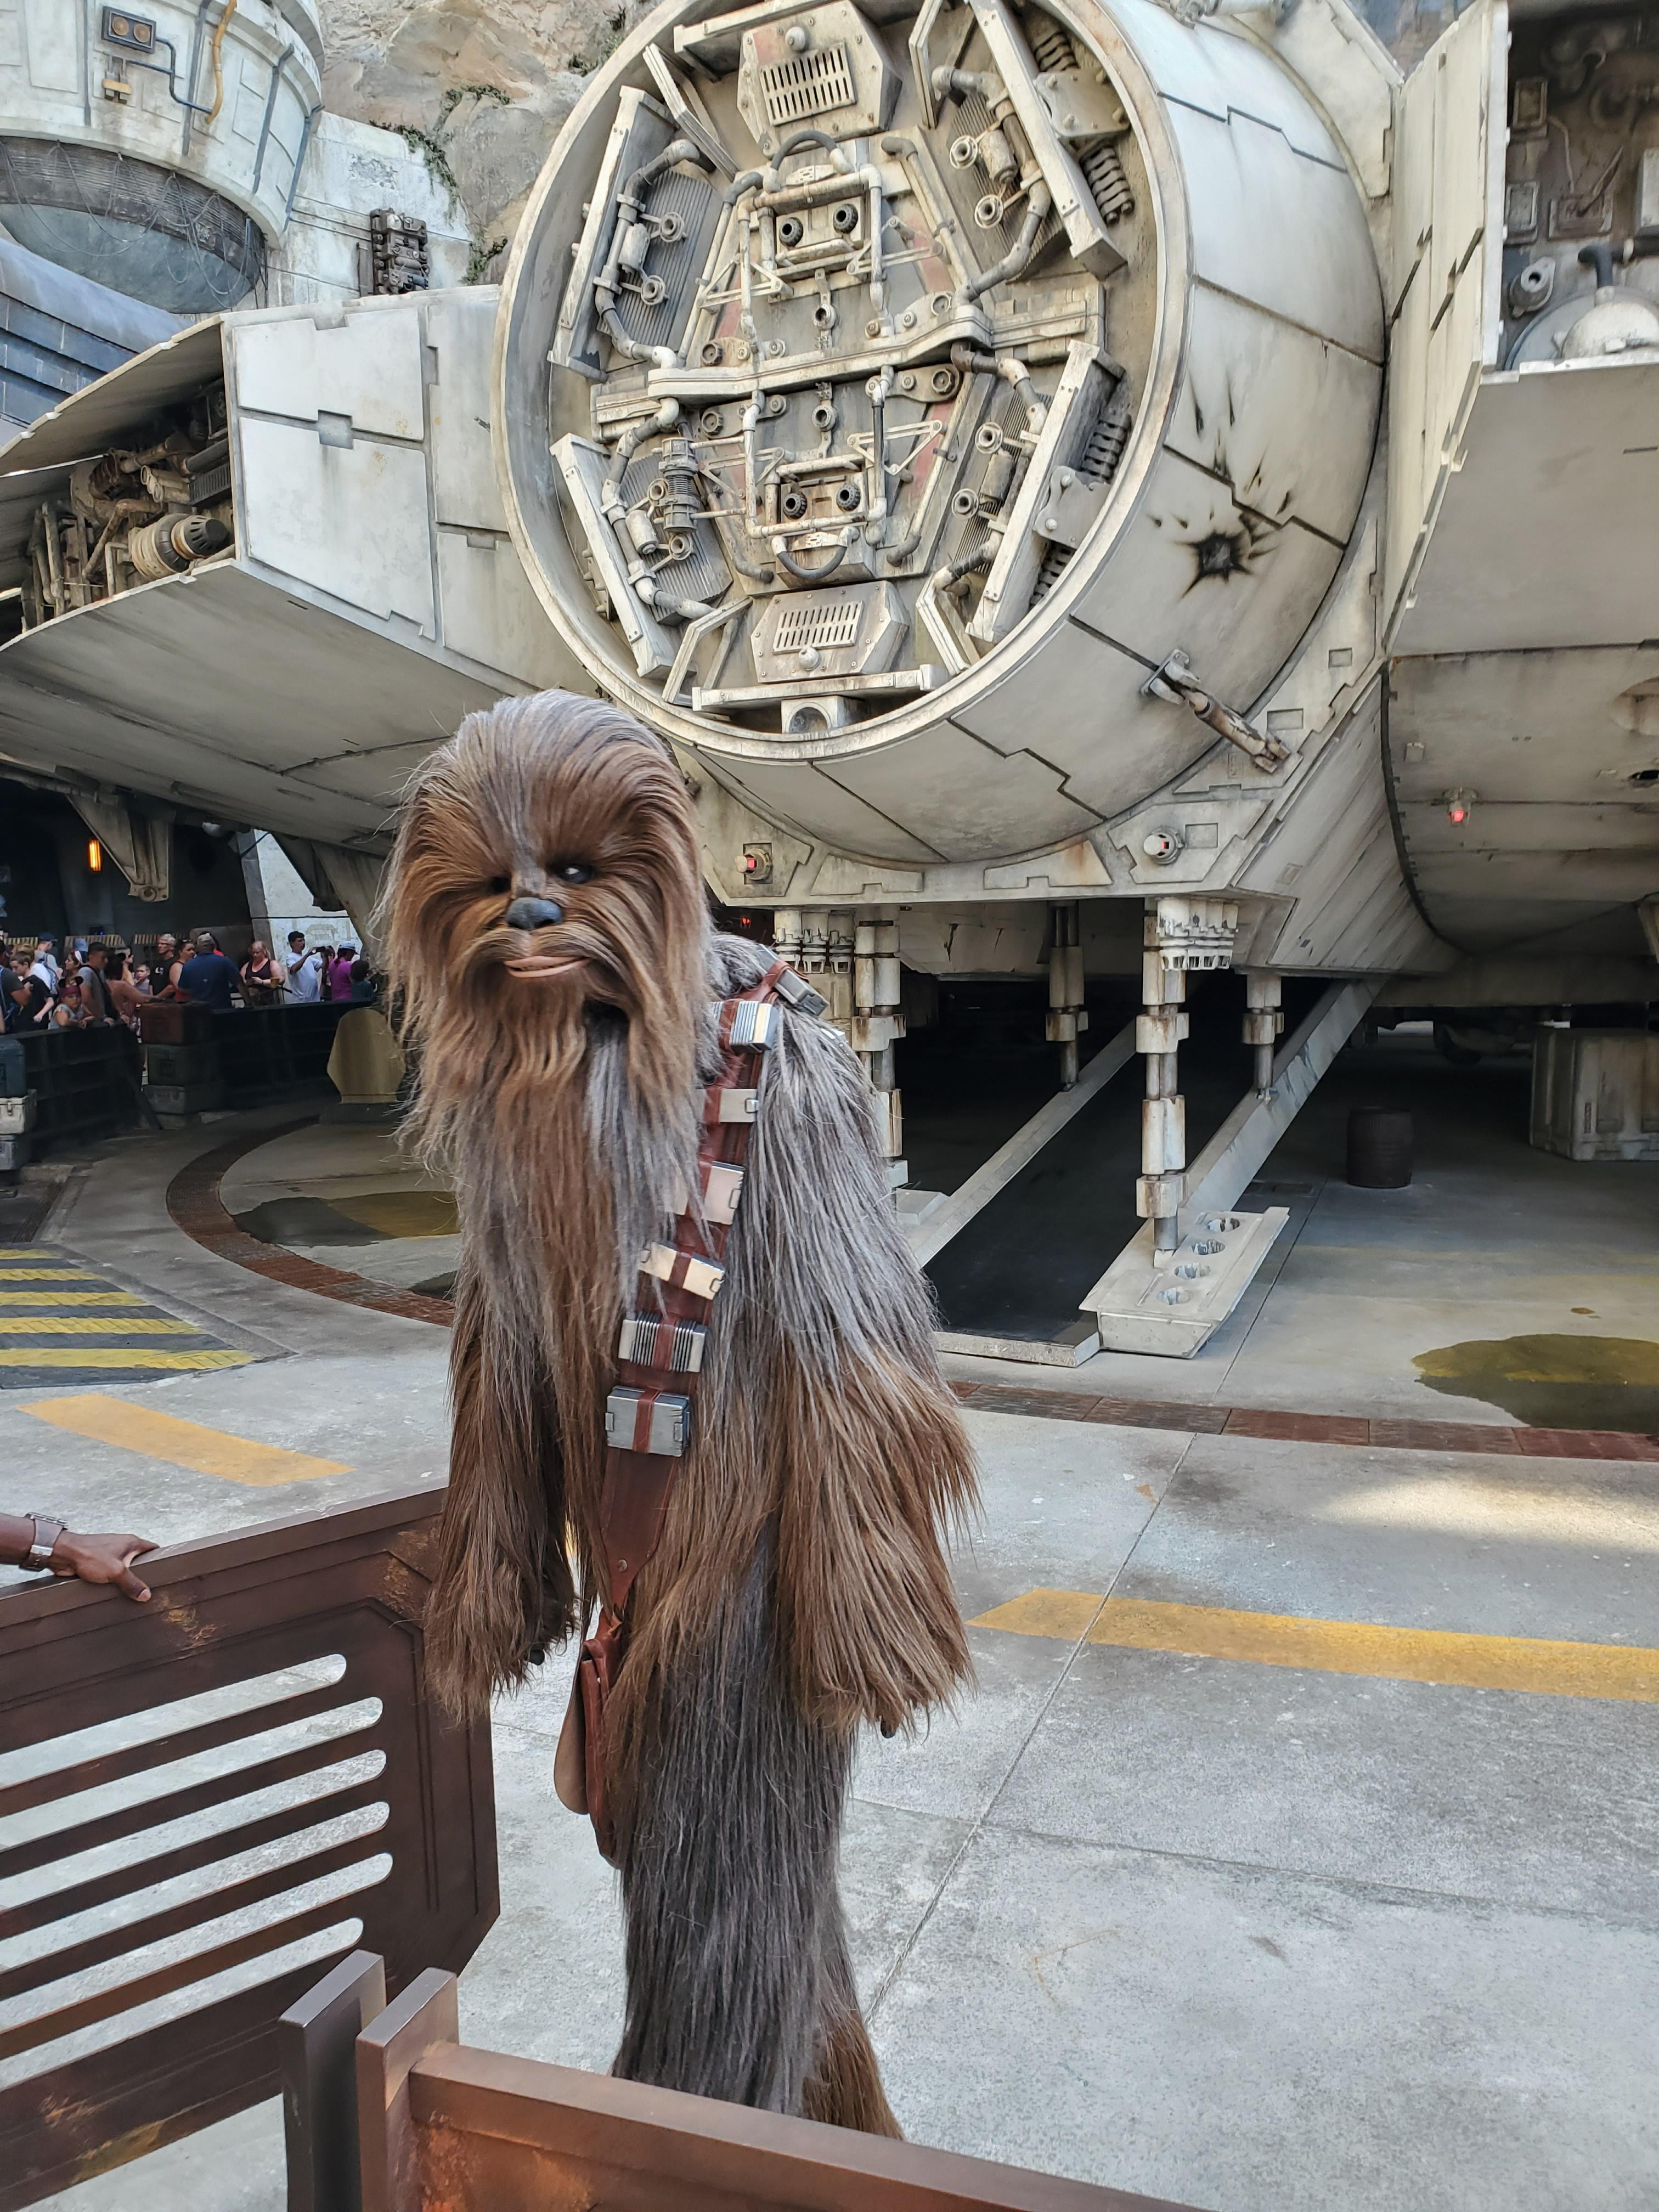 Of all the things I saw in Star Wars: Galaxy\'s Edge, this was what made me geek out the most. The closest connection to ...